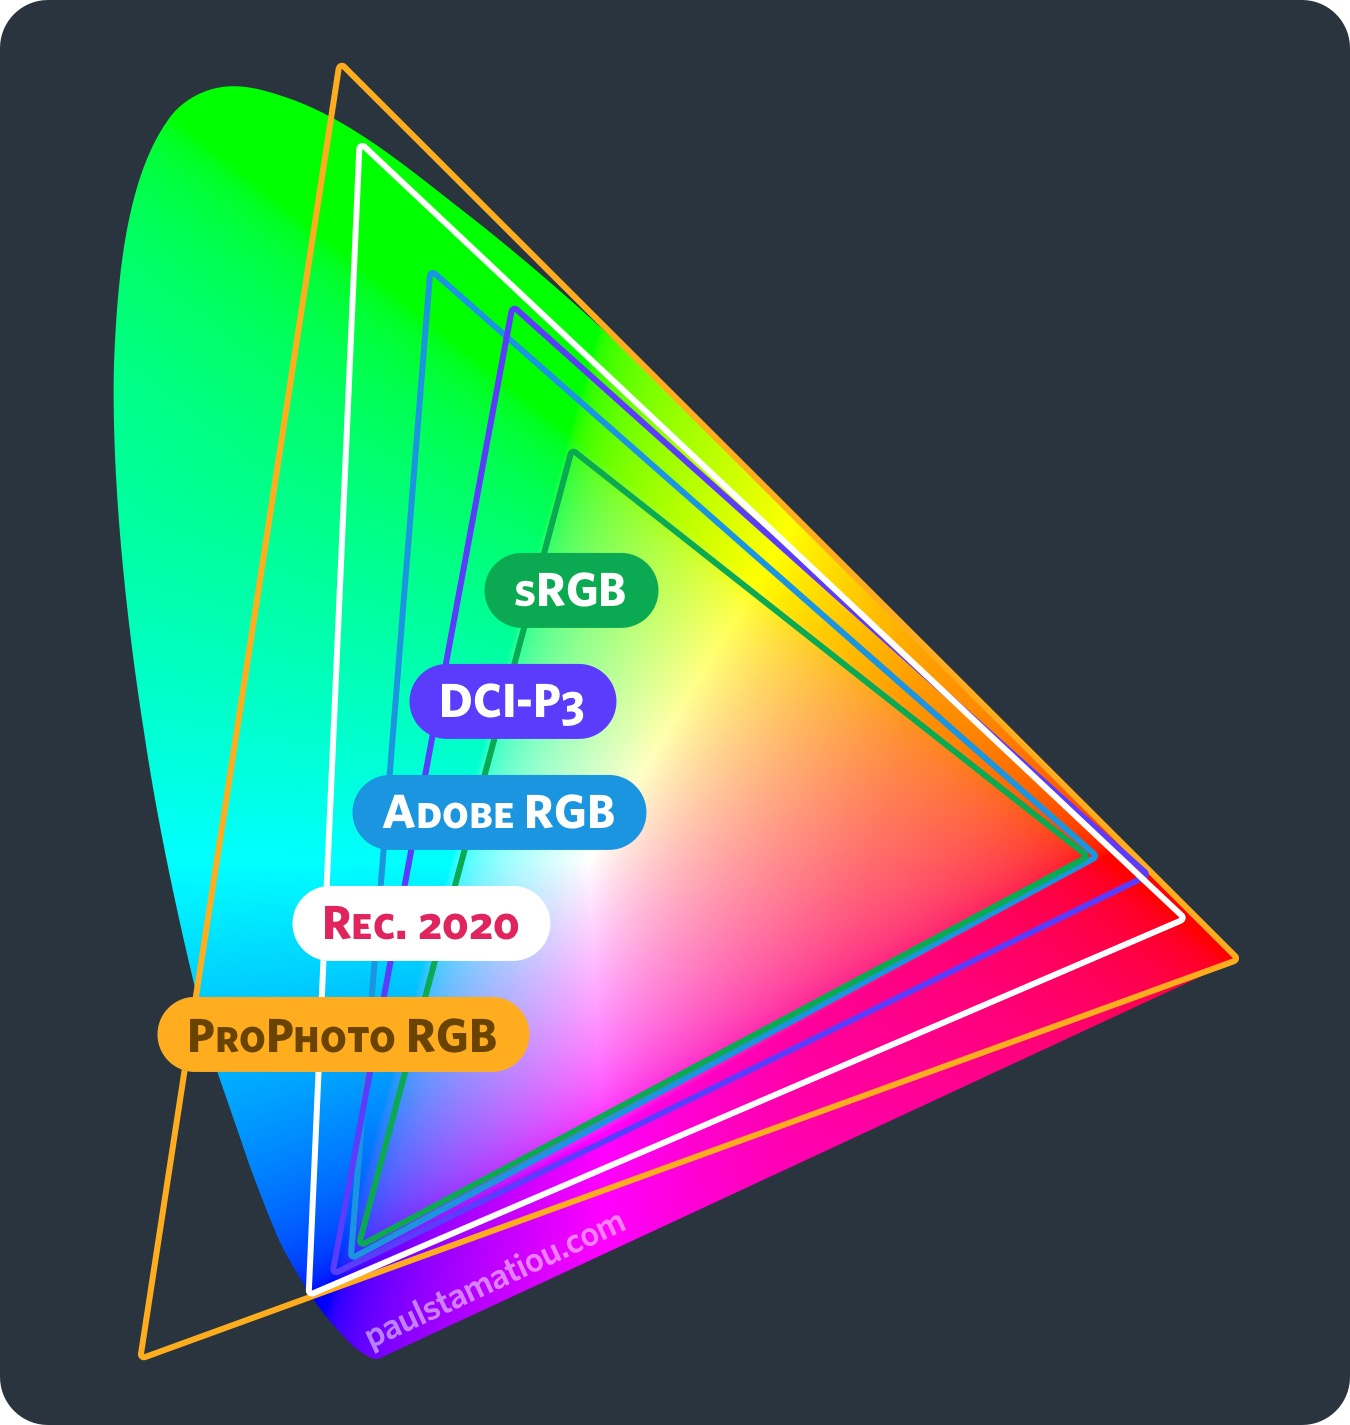 hight resolution of cie1931 color space comparisons prophoto rgb rec 2020 adobe rgb dci